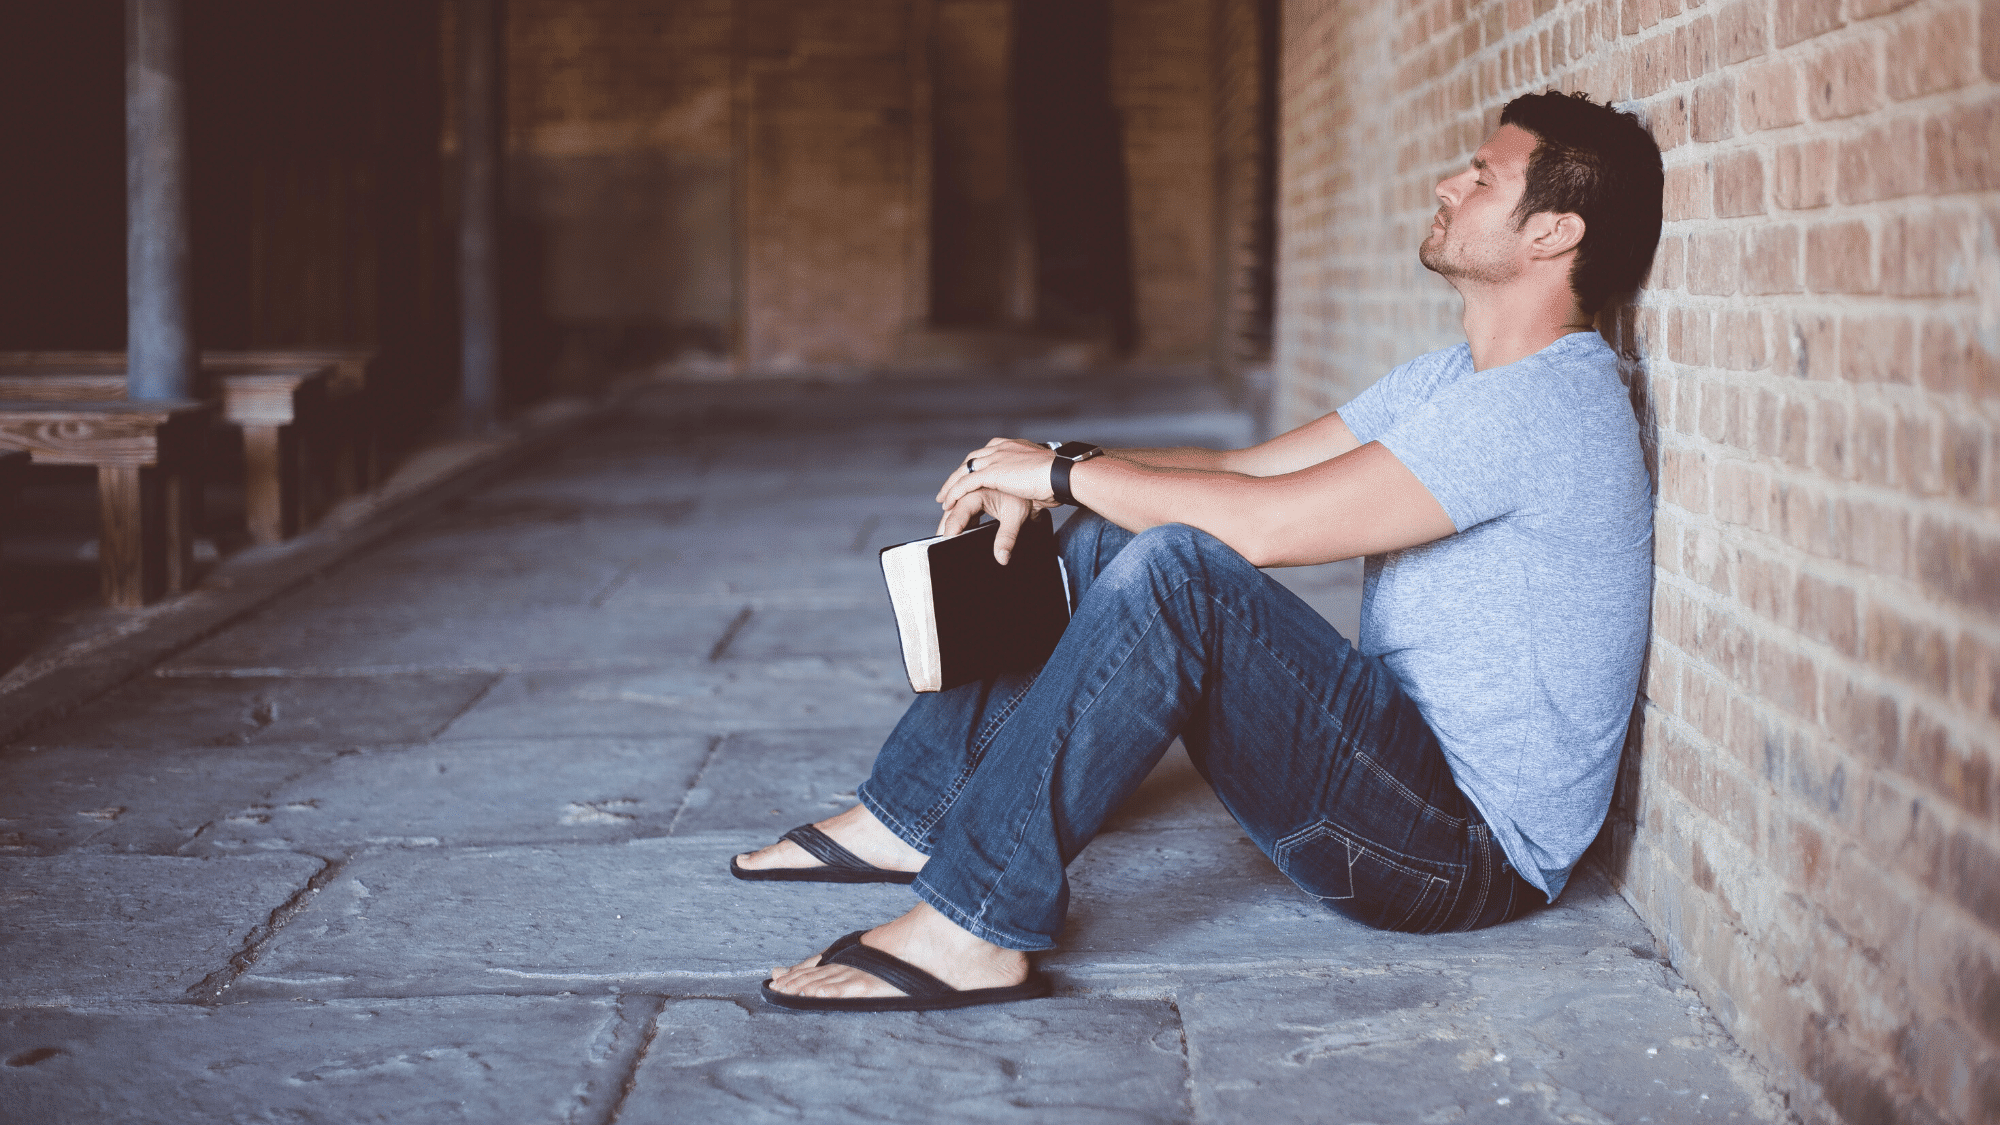 A man with a book is sitting on the ground with a closed eyes